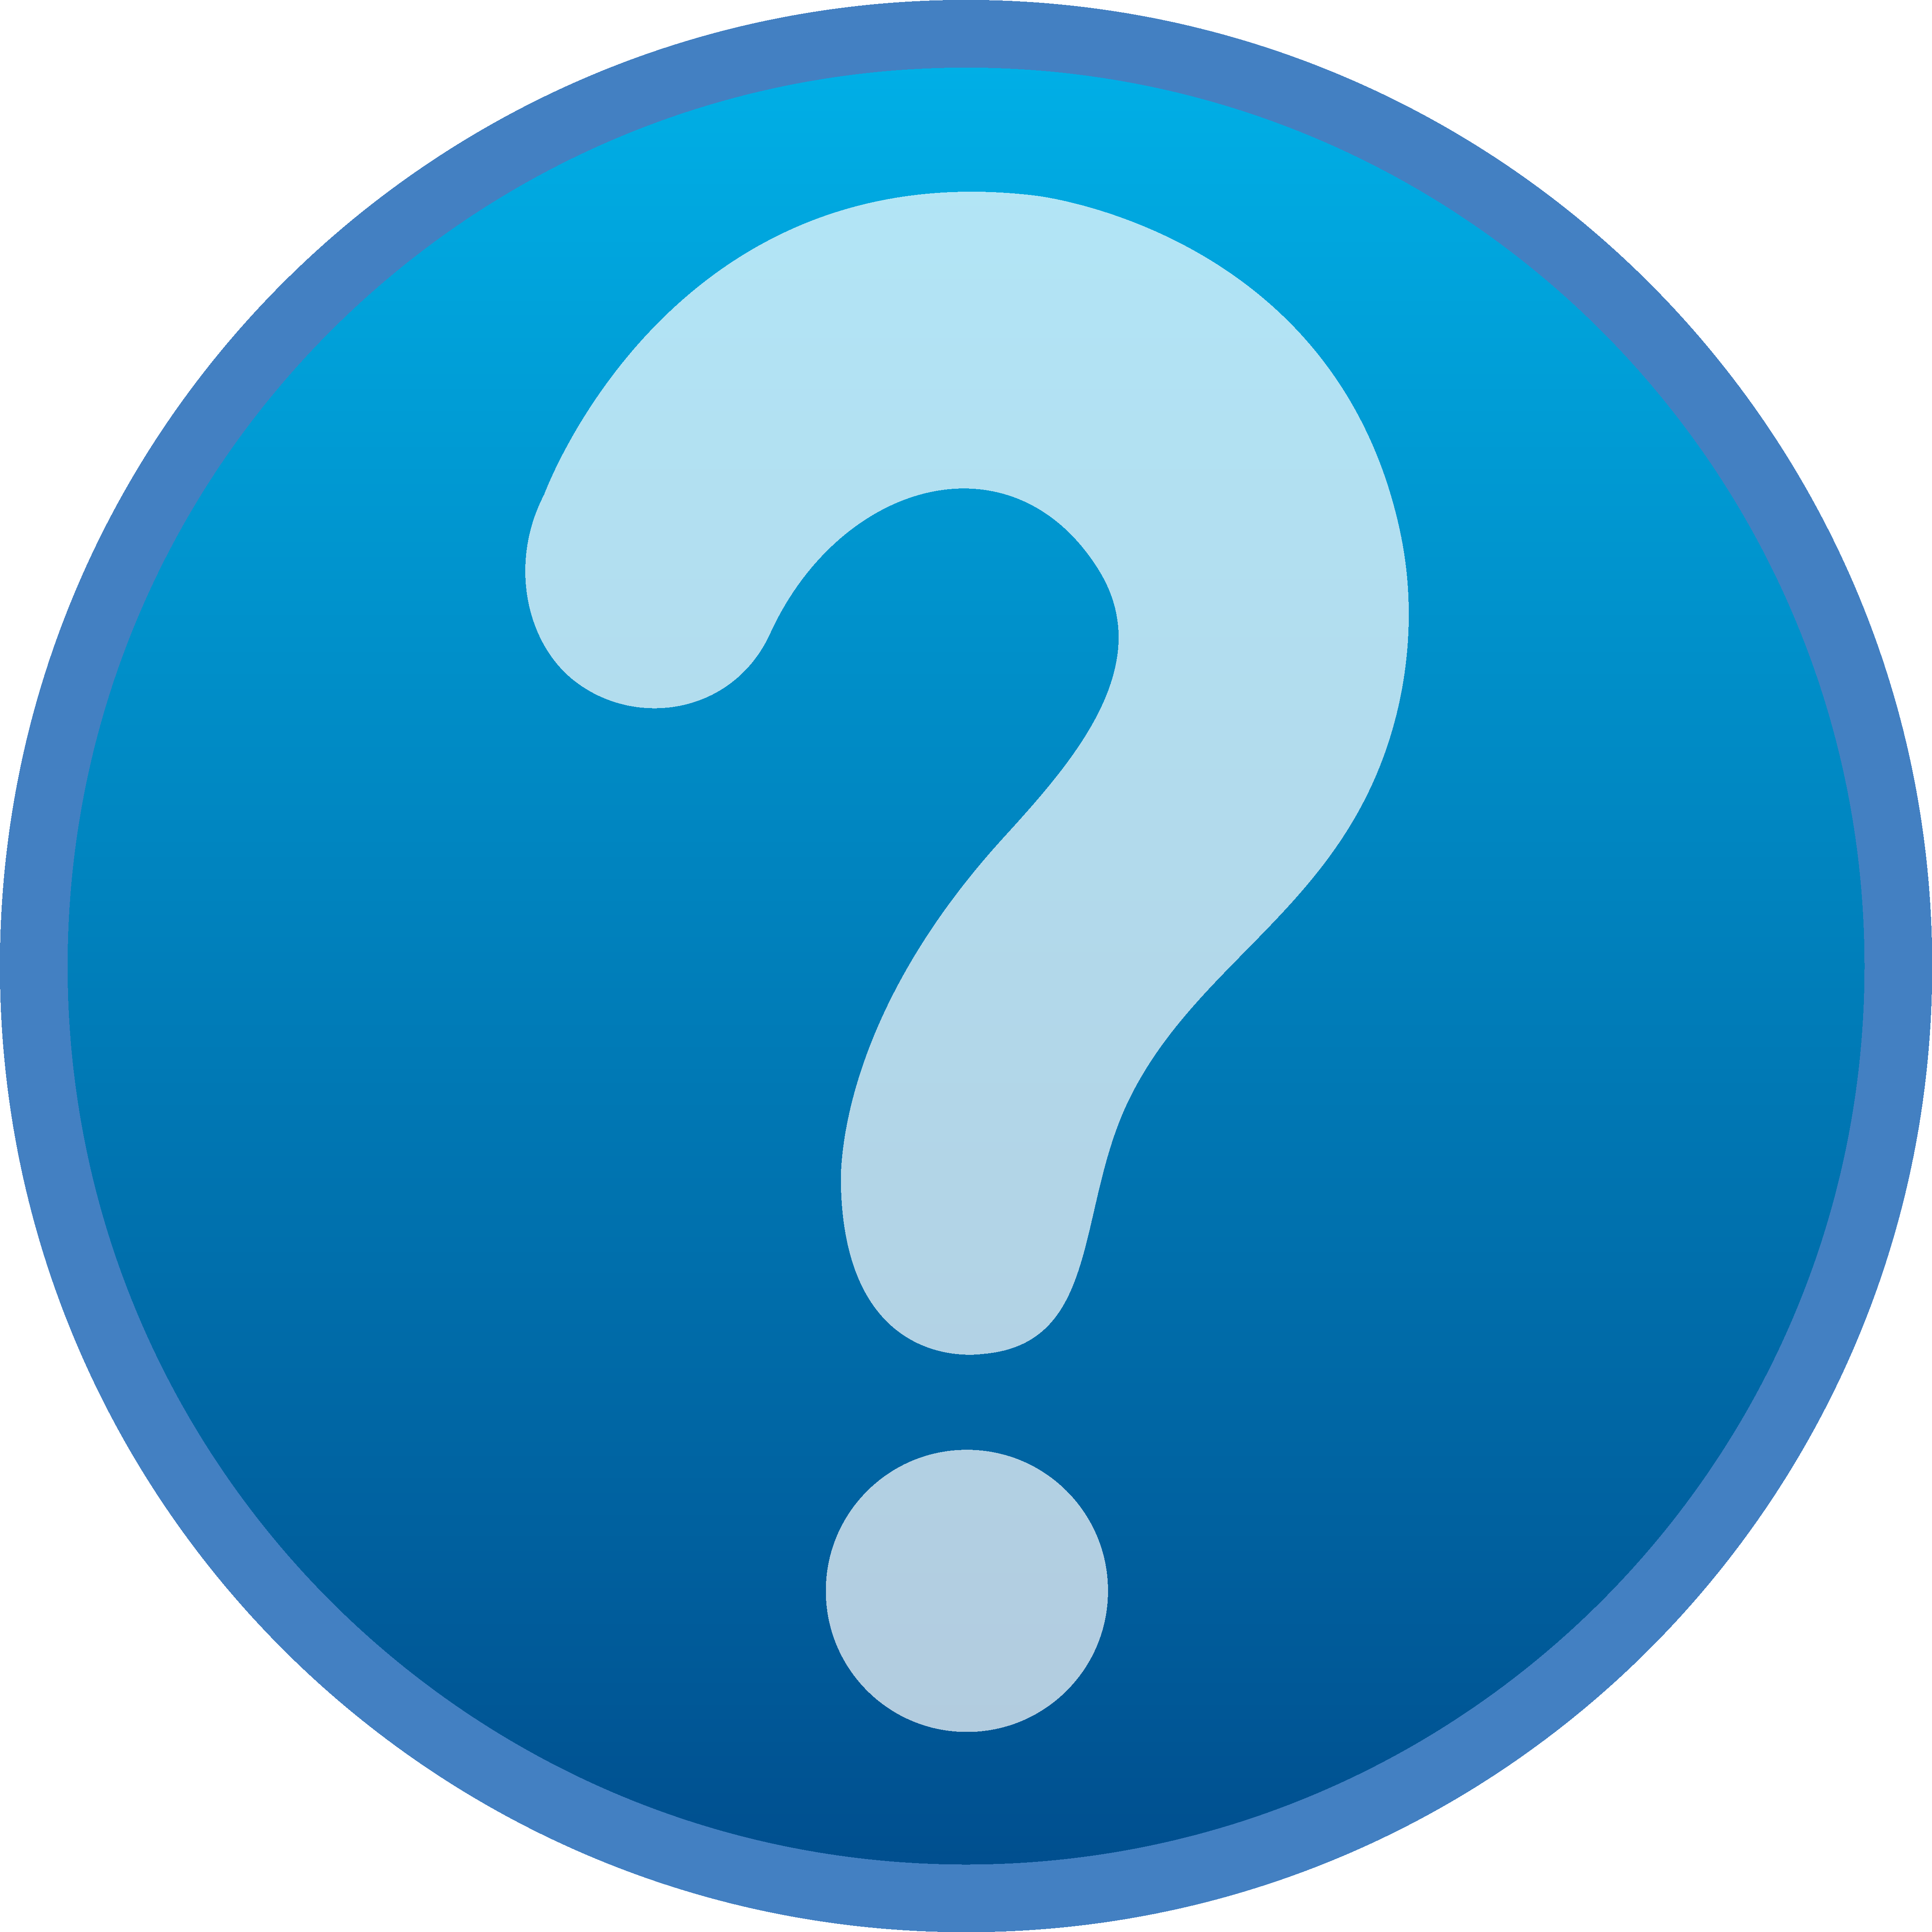 Microsoft clipart any question Clip Animated on Clipart Mark